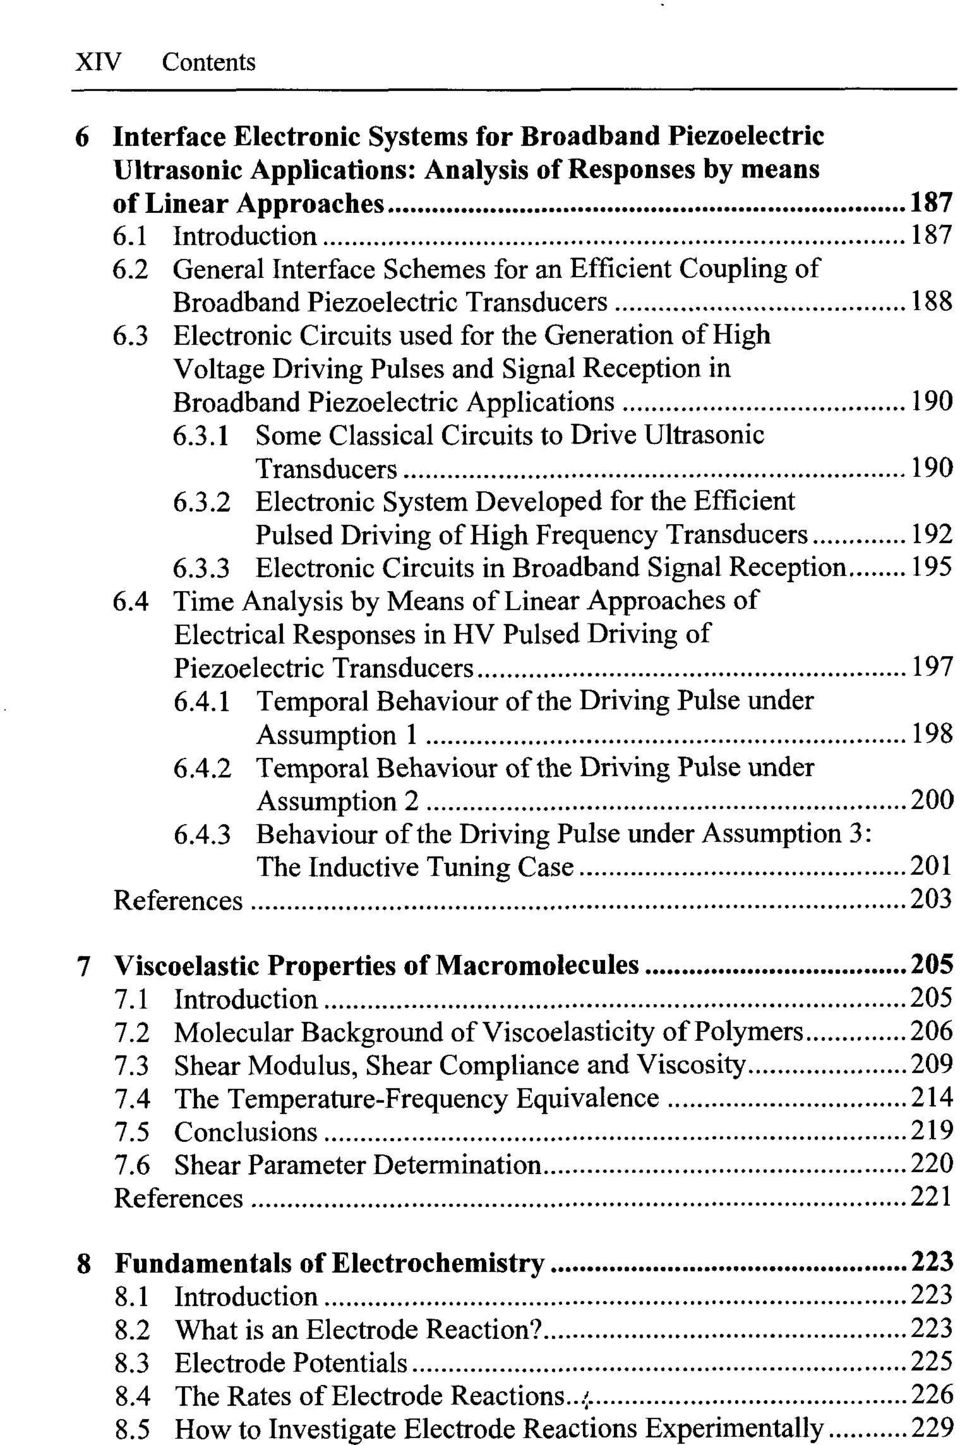 Piezoelectric Transducers and Applications - PDF